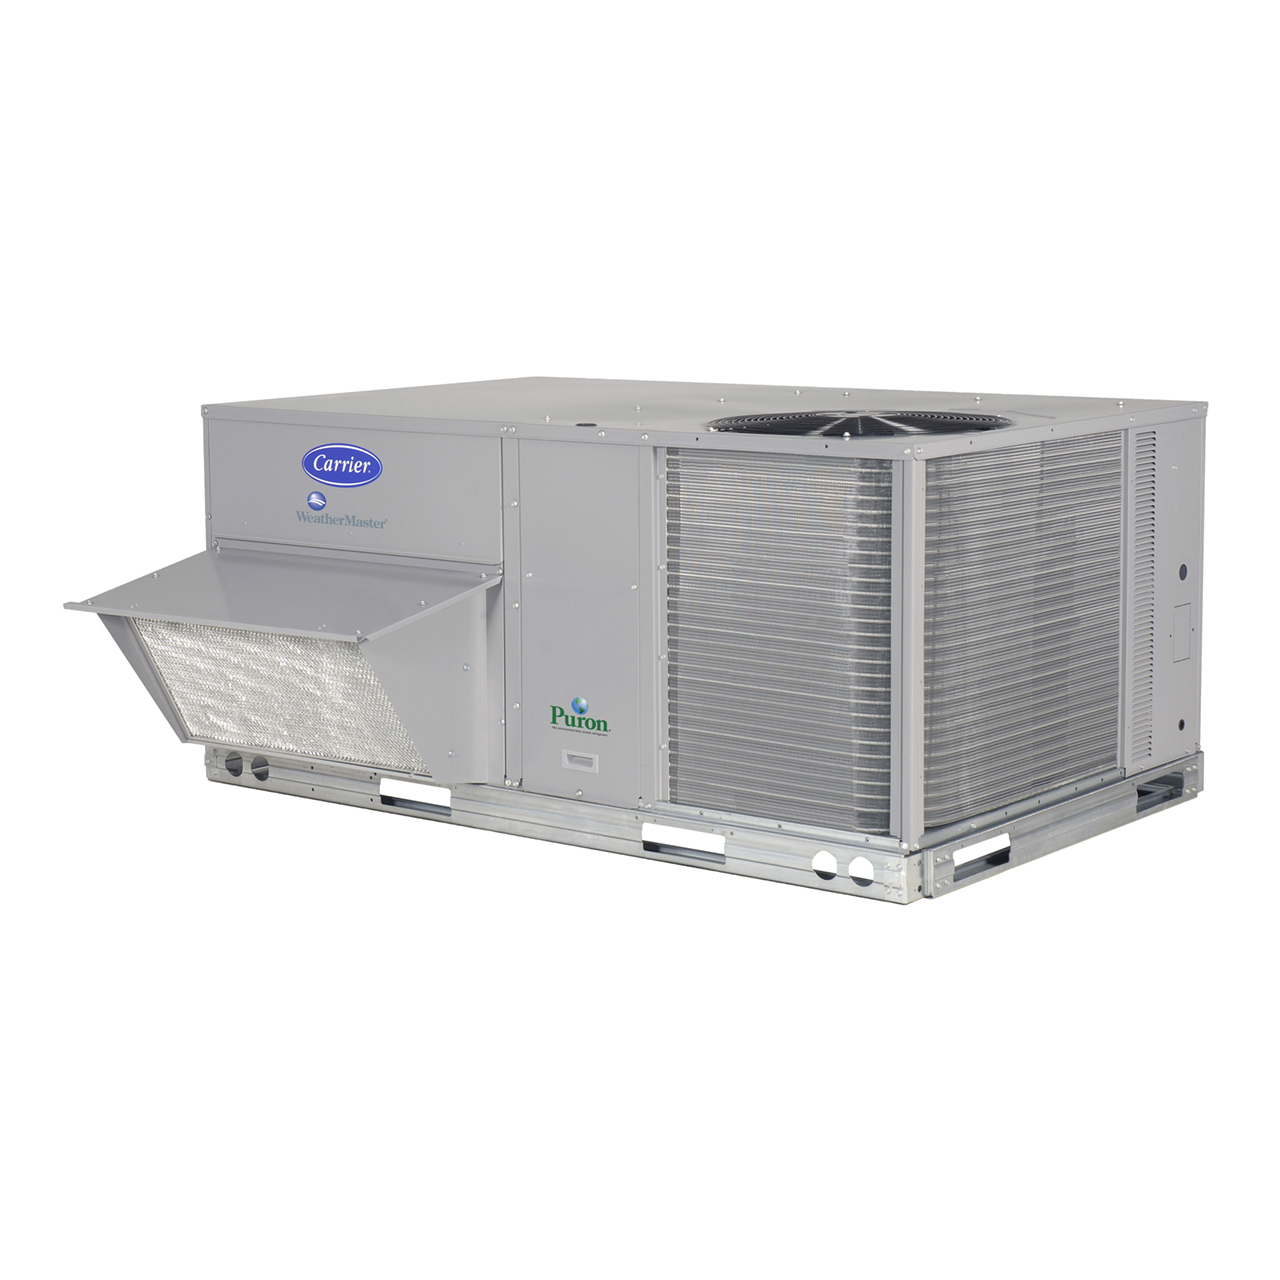 "50TC WeatherMaker® rooftop unit were designed by customers for customers. With a gauge plug, centralized control center, plug & play accessory board, ""no-strip screw"" collars, and handled access panels, we've made the unit easy to install, easy to maintain, and easy to use."